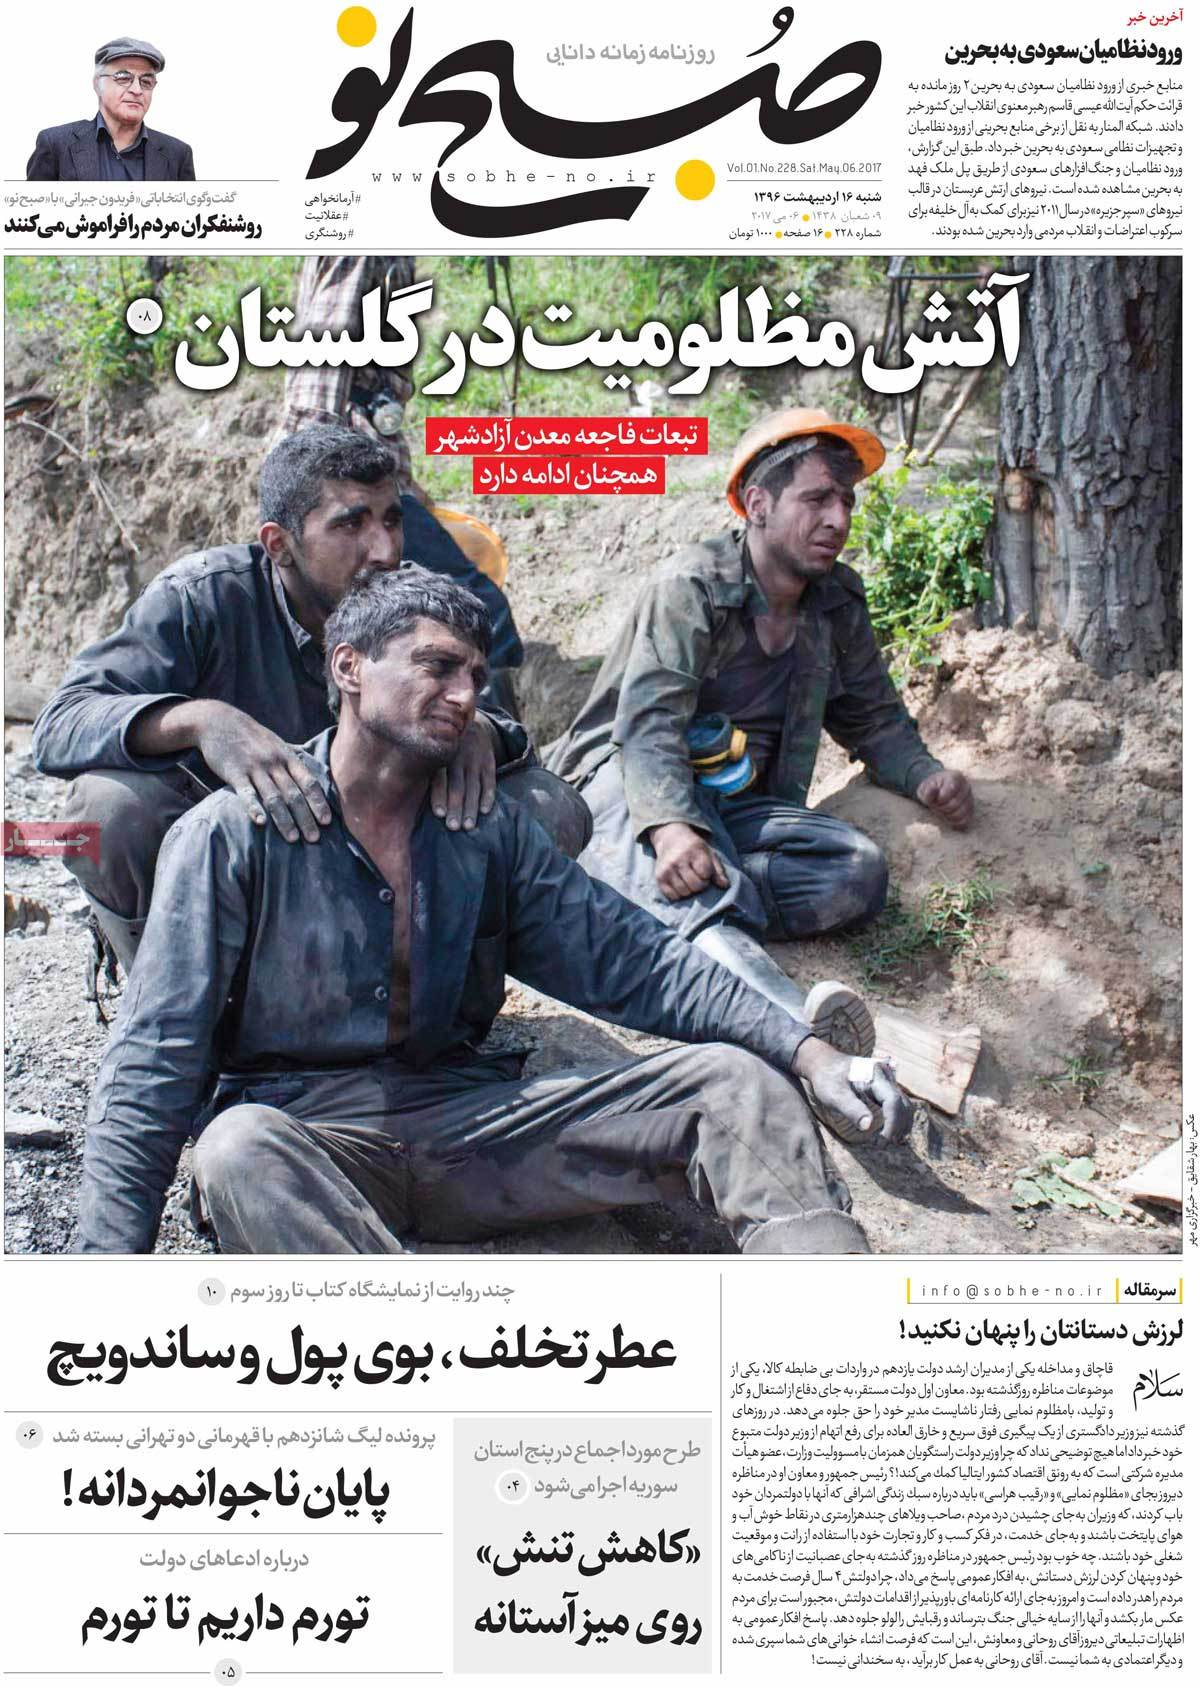 A Look at Iranian Newspaper Front Pages on May 6 - sobheno